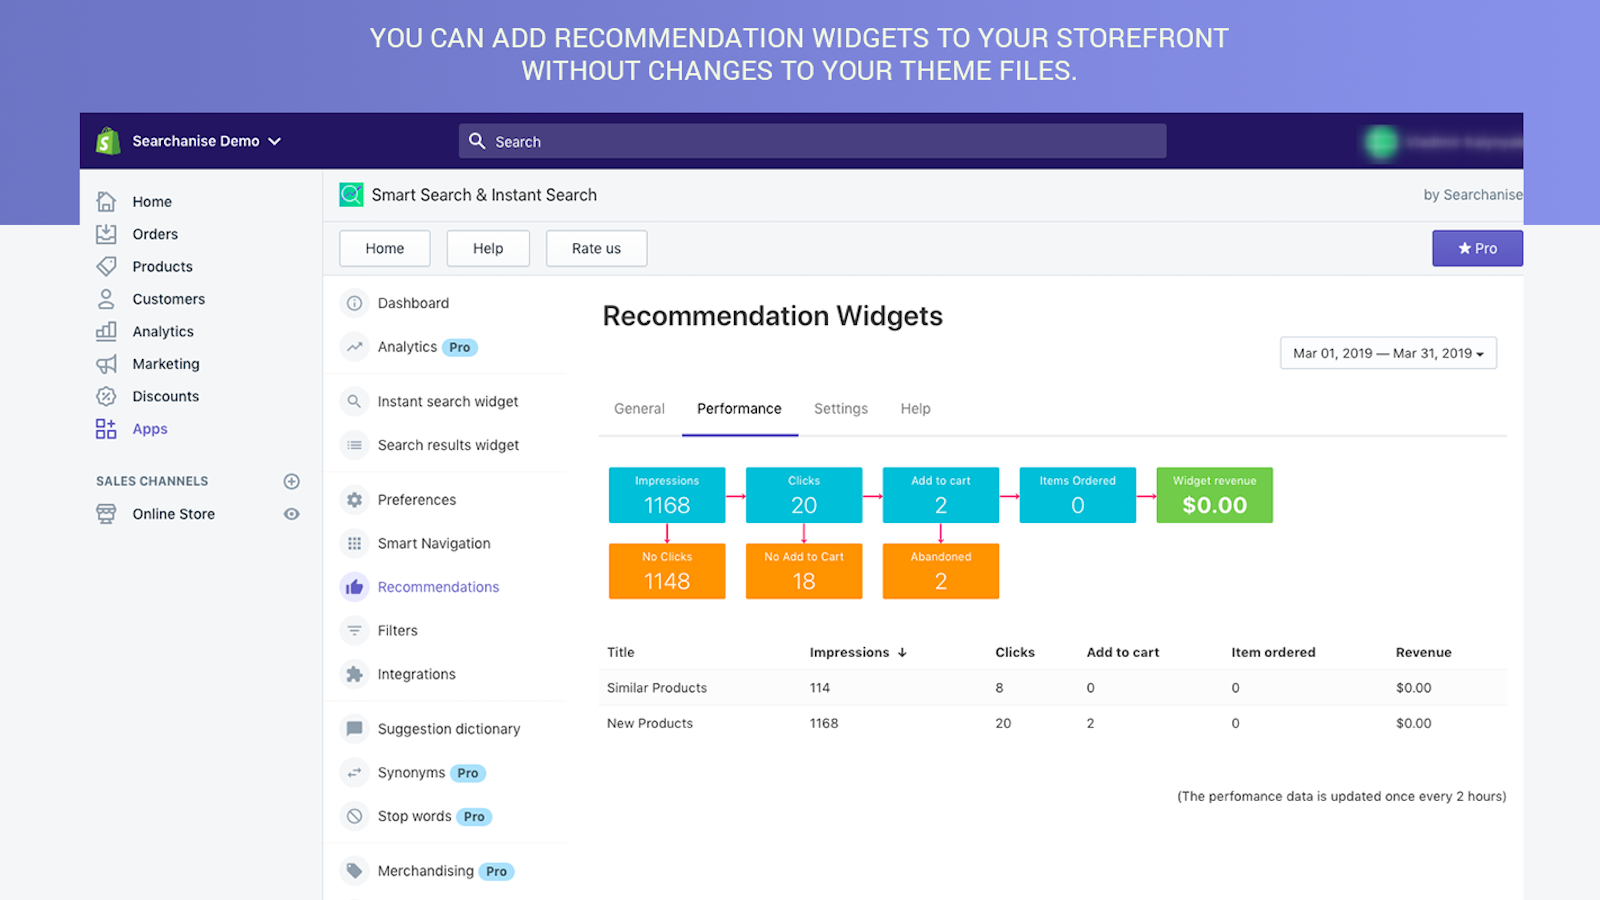 Recommendation widgets without changes to theme files